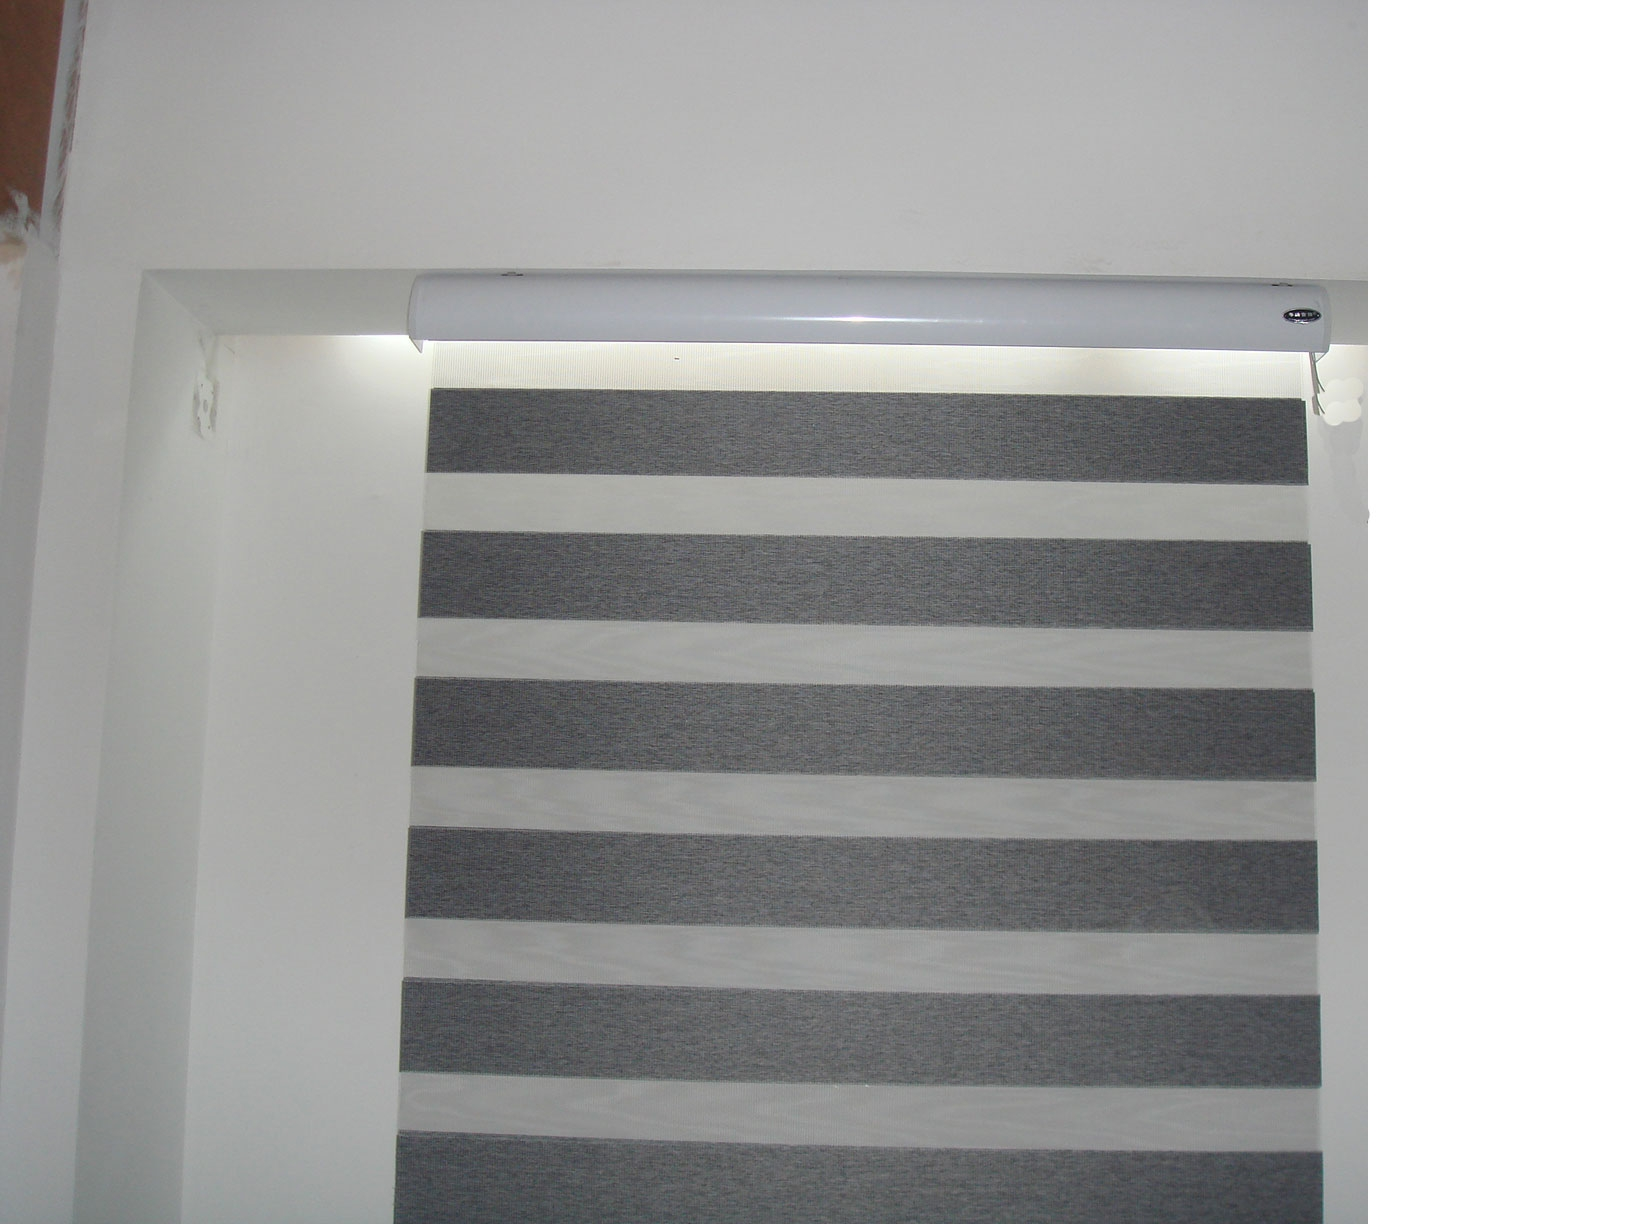 Fabric Roller Blind Delex Window Decoration Co Ltd Page 1 Intended For Roller Fabric Blinds (Image 5 of 15)